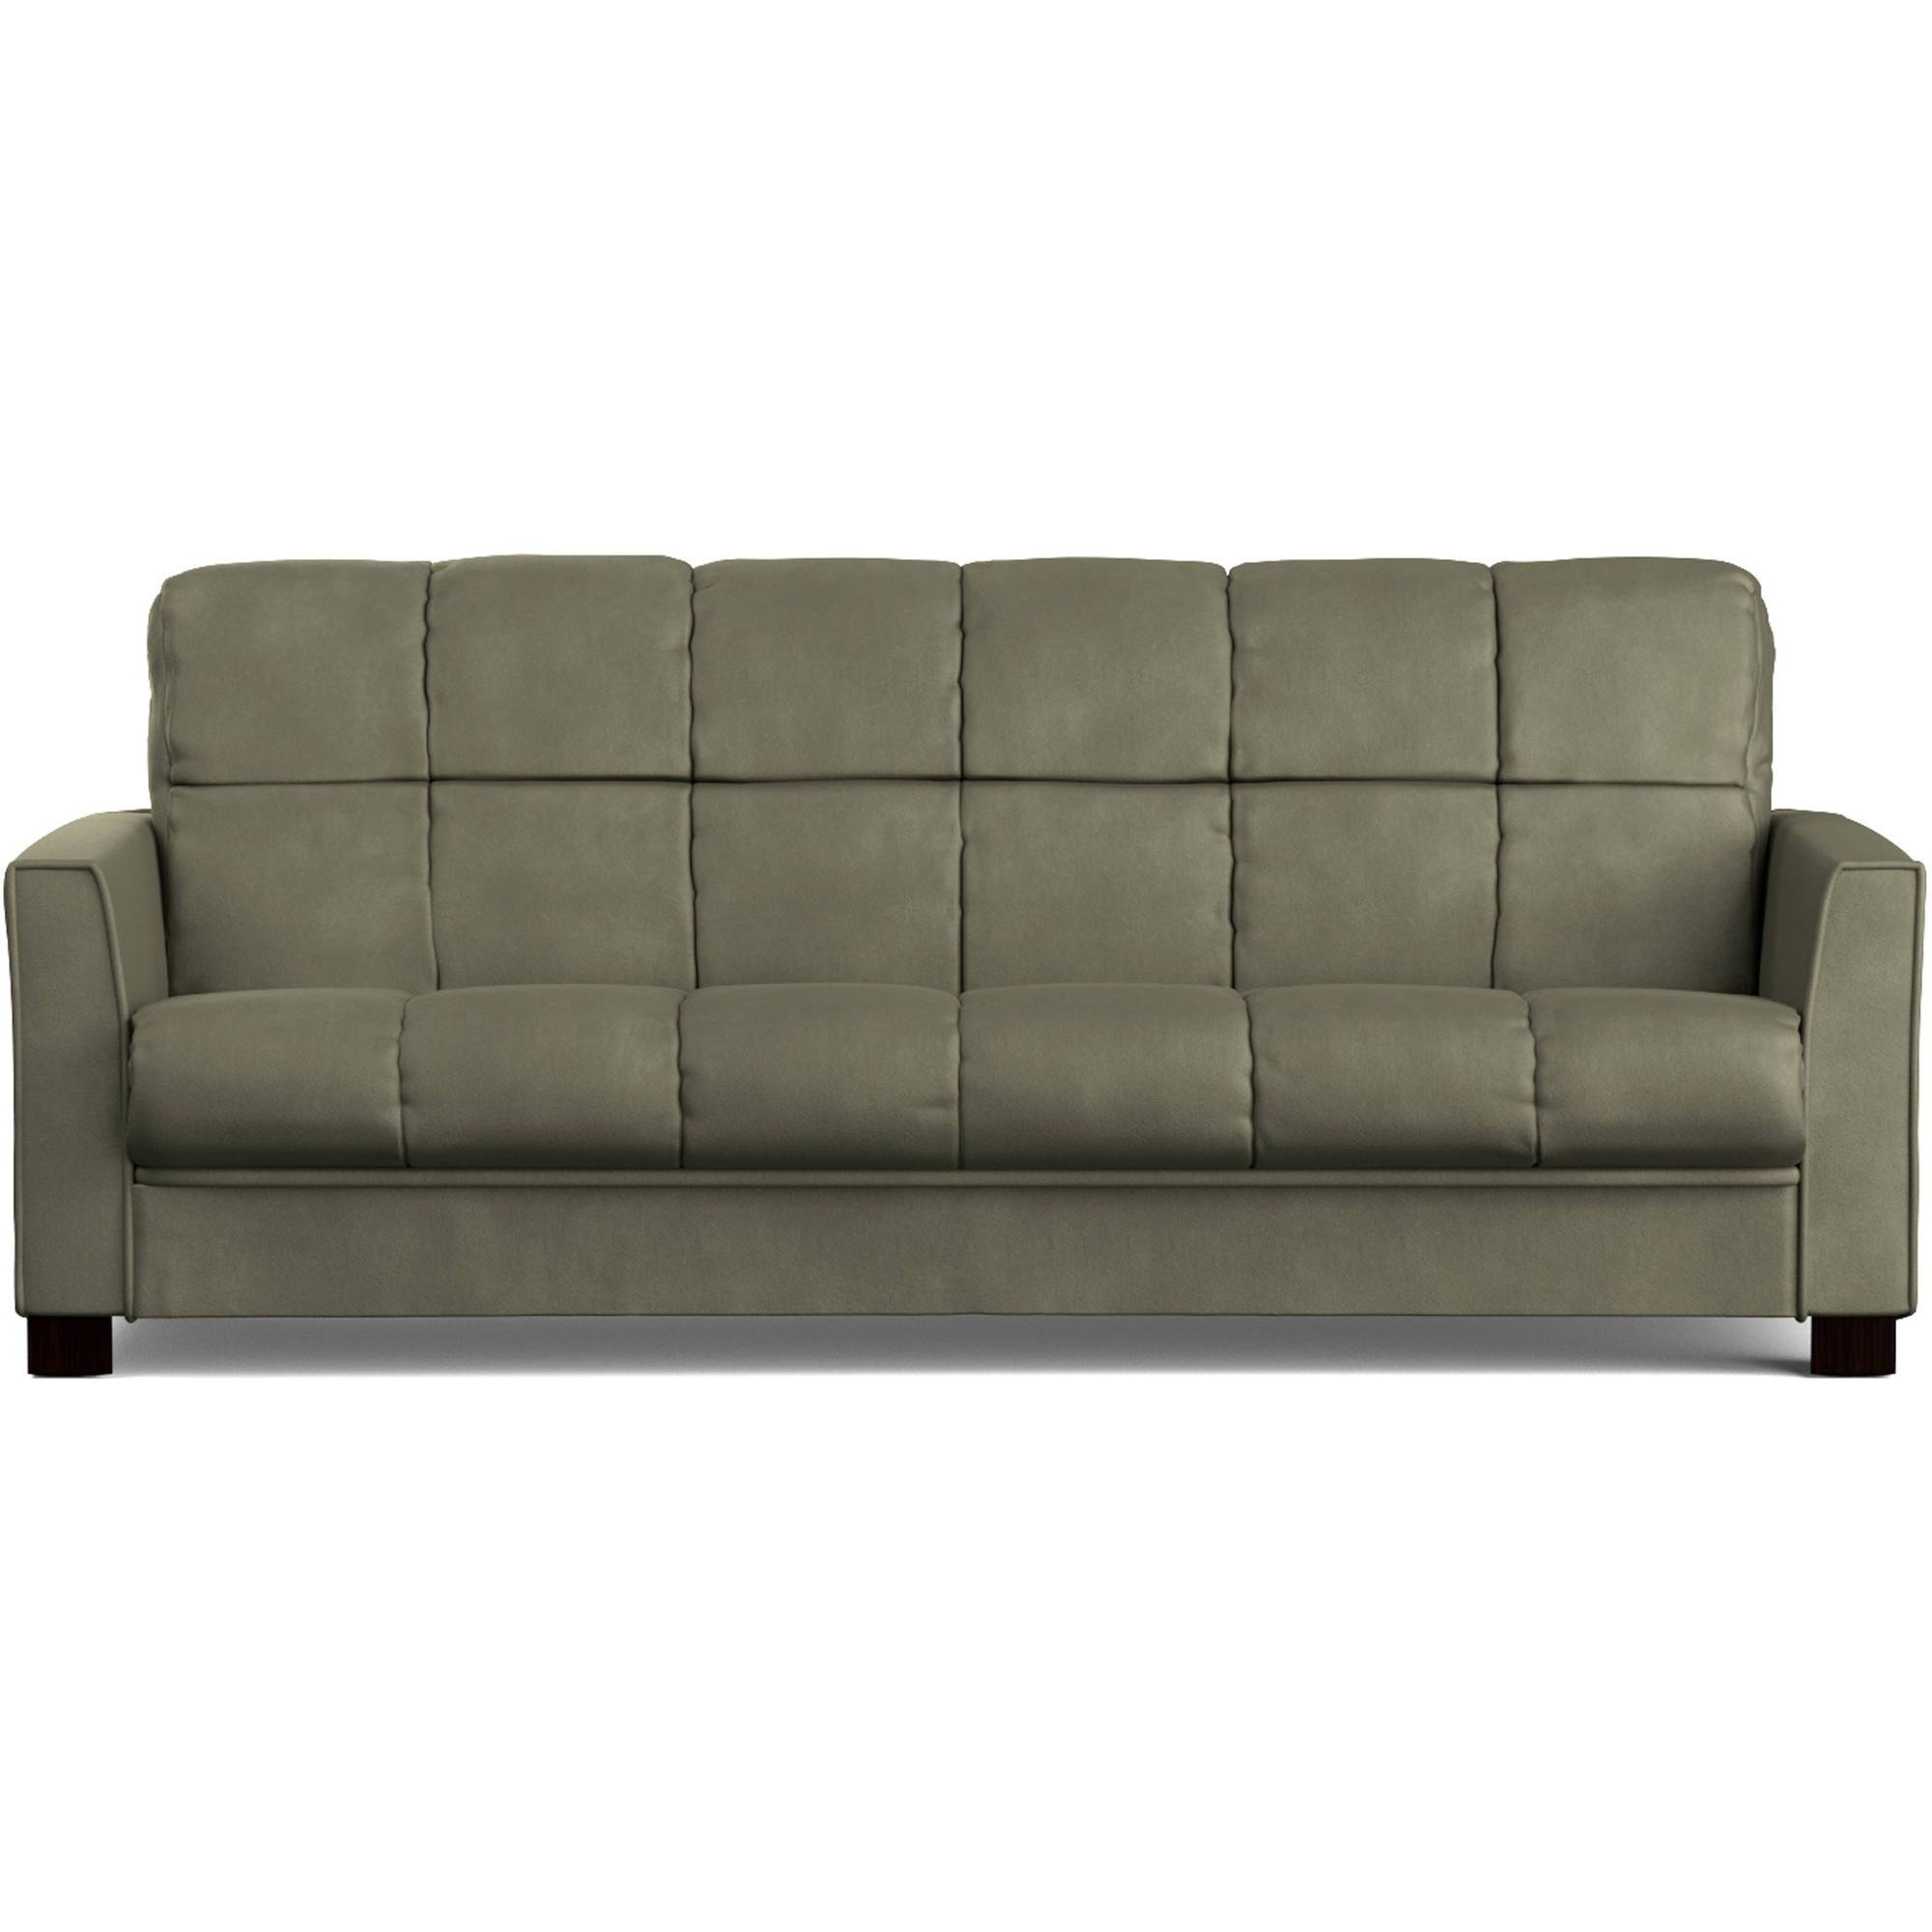 ▻ Sofa : 31 Lovely Sofa Bed Futon Most Comfortable Sofa Bed 78 for Most Comfortable Sofabed (Image 29 of 30)